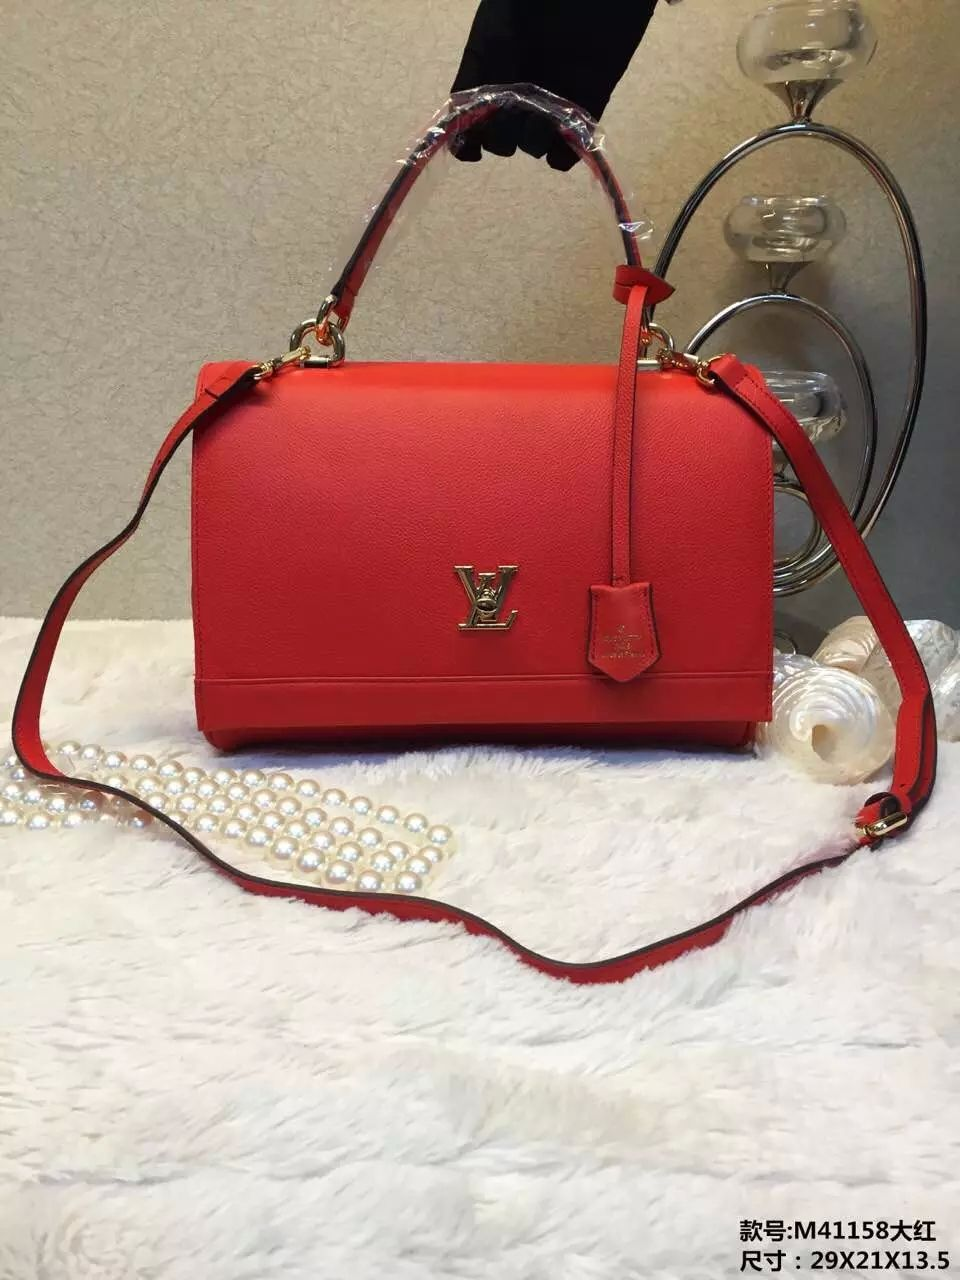 Louis Vuitton Epi Leather M41158 Red Bag 228 00 Abbags